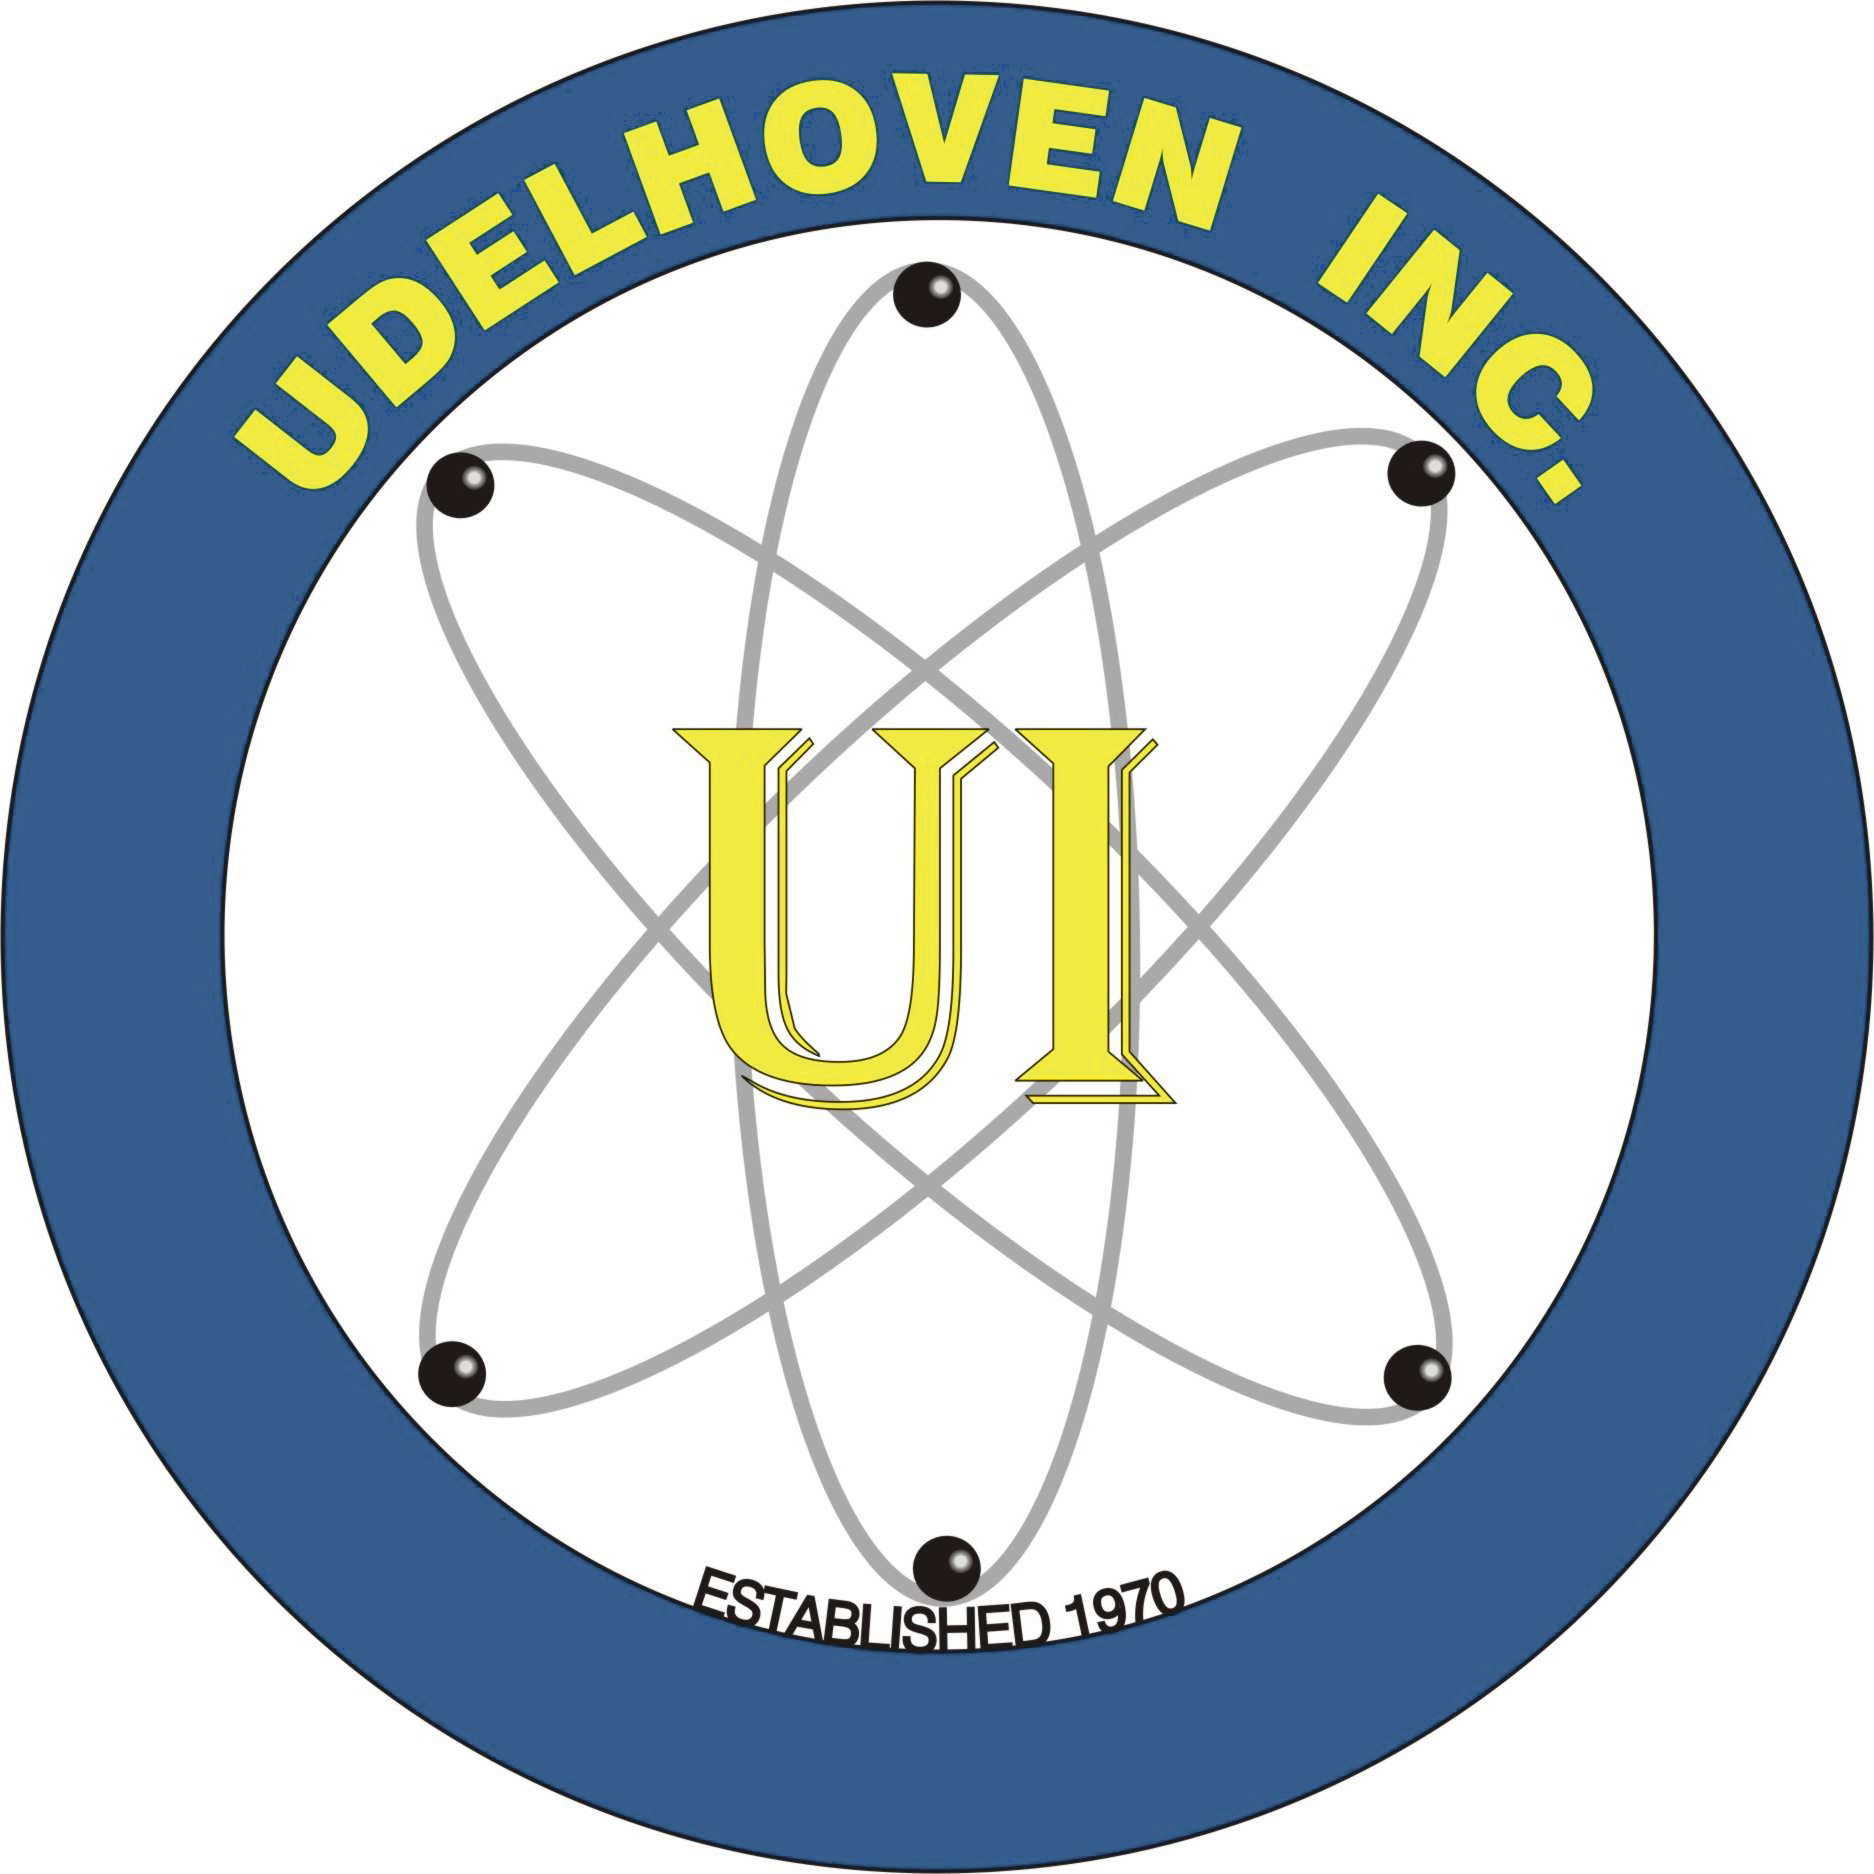 Udelhoven Inc provides Quality Assurance, Quality Control, Electrical and Instrumentation Support, Start-up, Pre-commissioning, Commissions Activities, Project Management and Fabrication Site Management for the Oil and Gas Industry and the Power Industry.